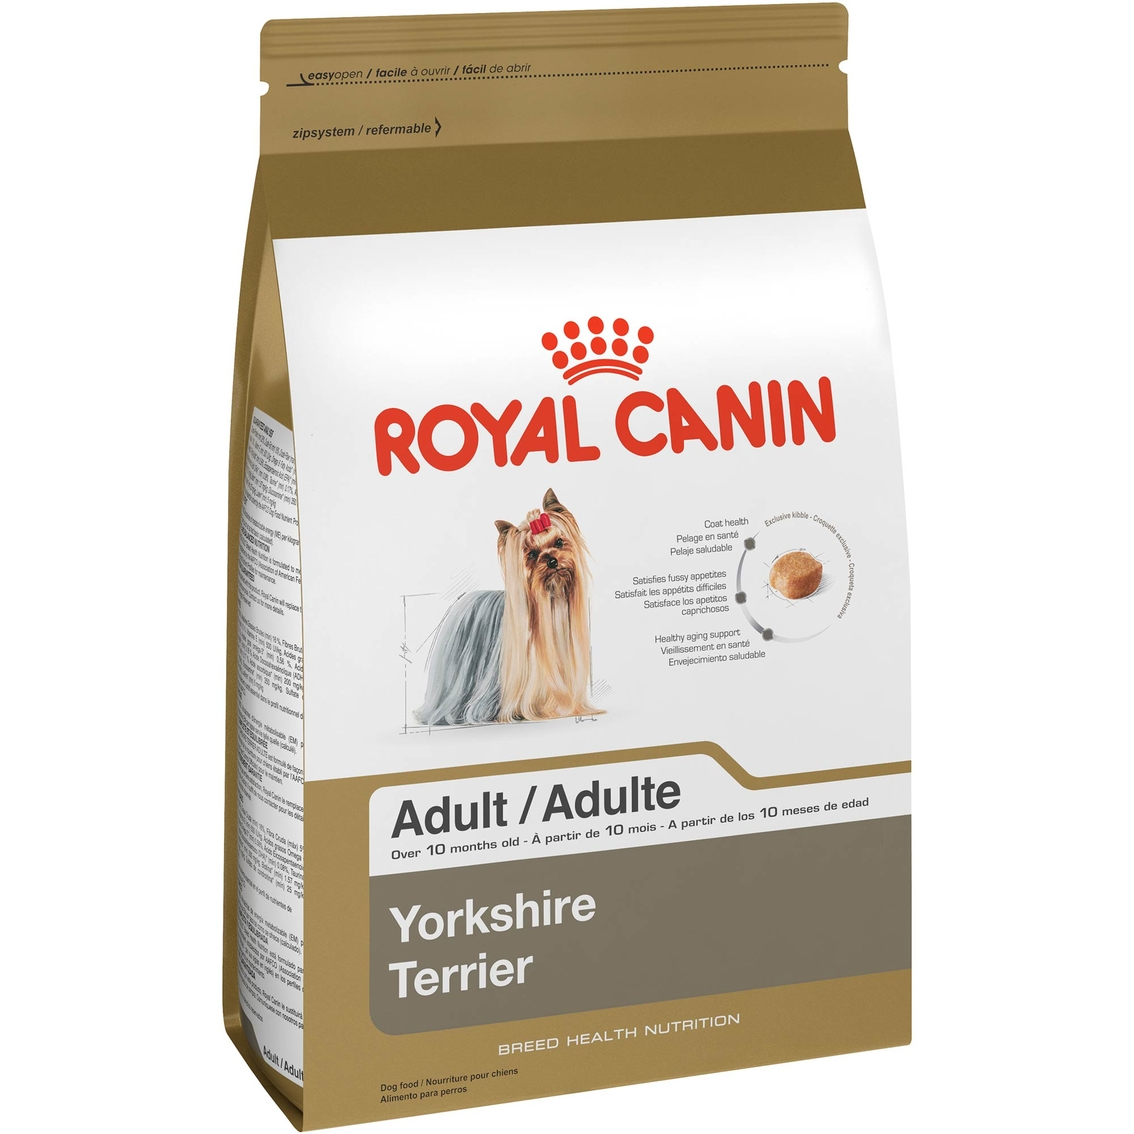 Royal Canin Breed Health Nutrition Yorkshire Terrier Dog Food Food